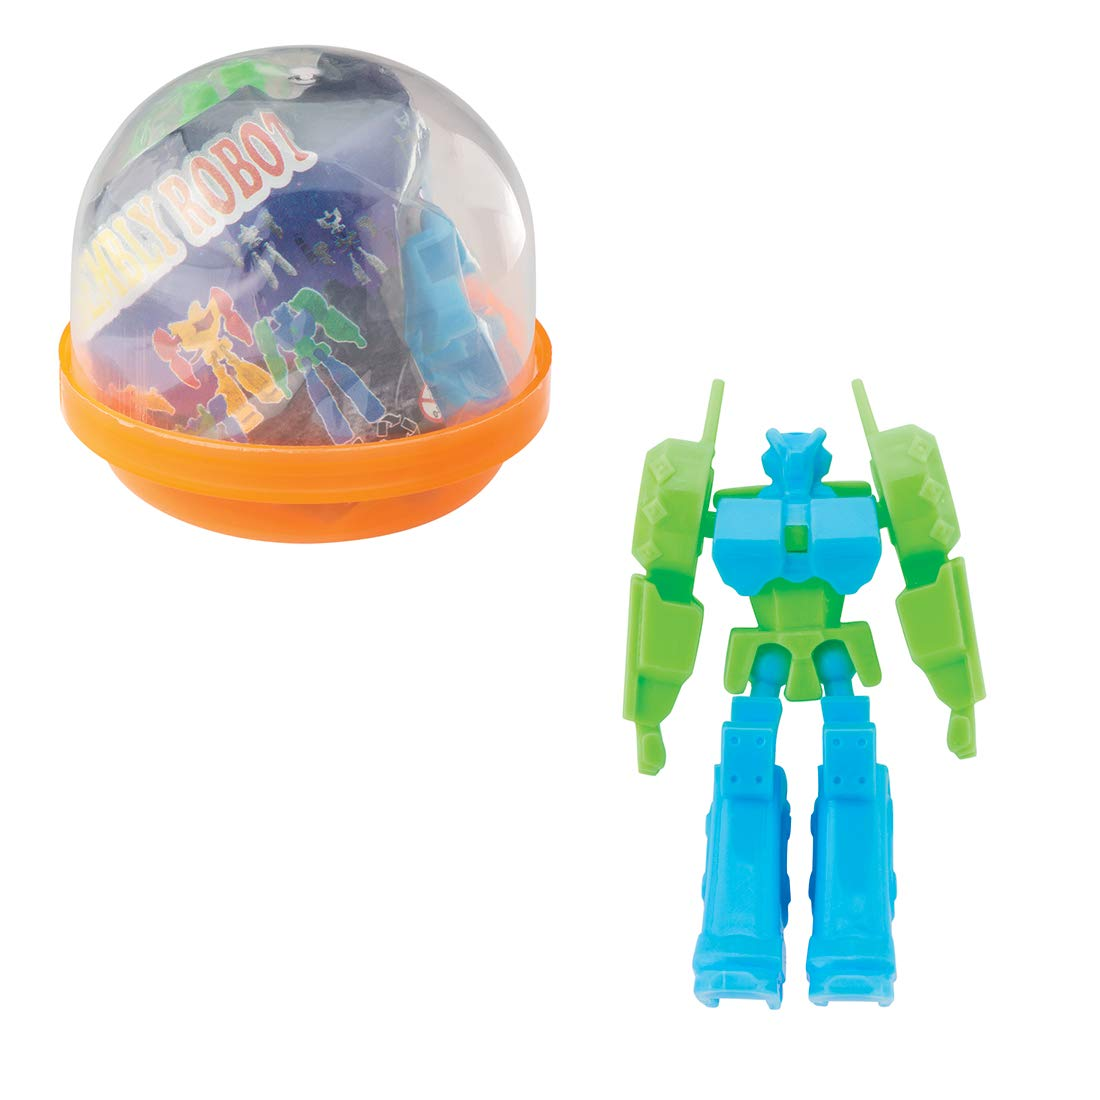 SmileMakers Make Your Own Robots in 2'' Capsules - Prizes 250 per Pack by SmileMakers (Image #1)